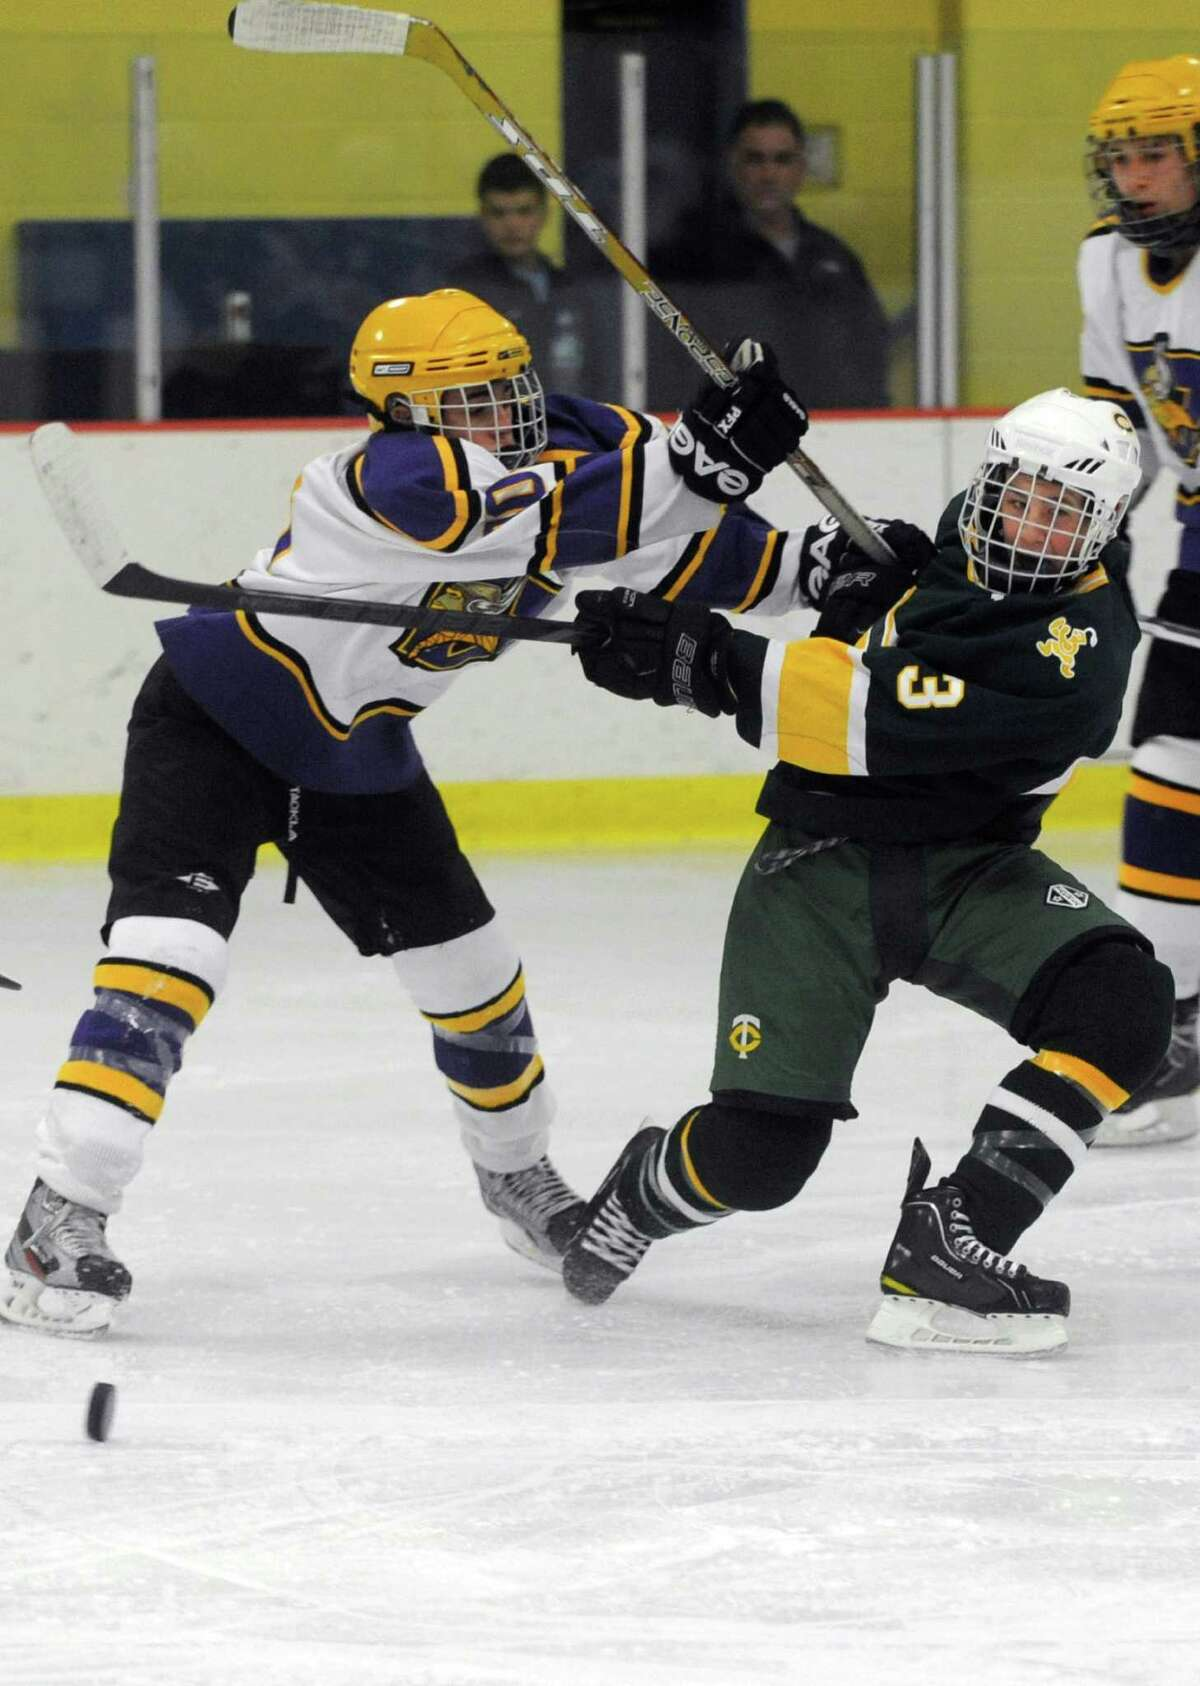 Westhill's Matthew Abt, left, and Trinity Catholic's Colin Bernard, right, compete for control of the puck during Saturday's boys ice hockey game at Terry Connors Rink in Stamford on January 12, 2013.